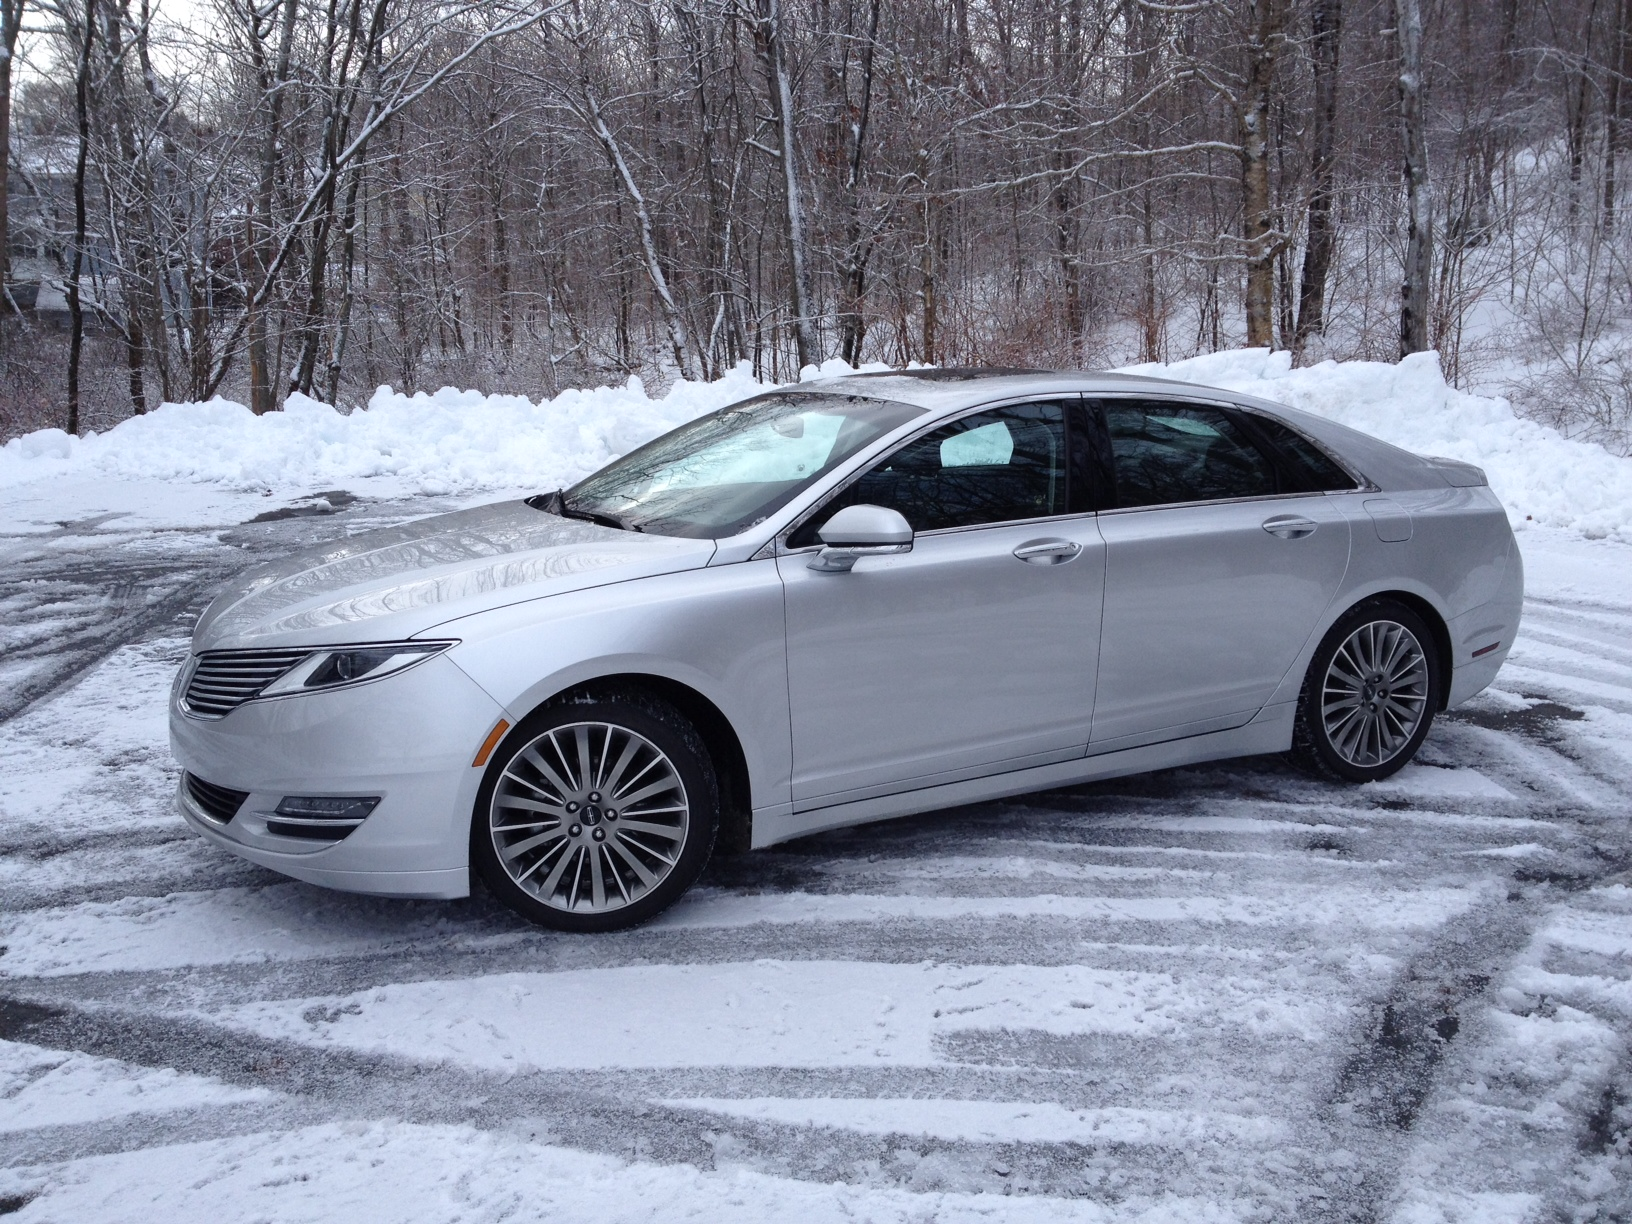 hybrid to fast s lsff the appeal mkz adds review lincoln